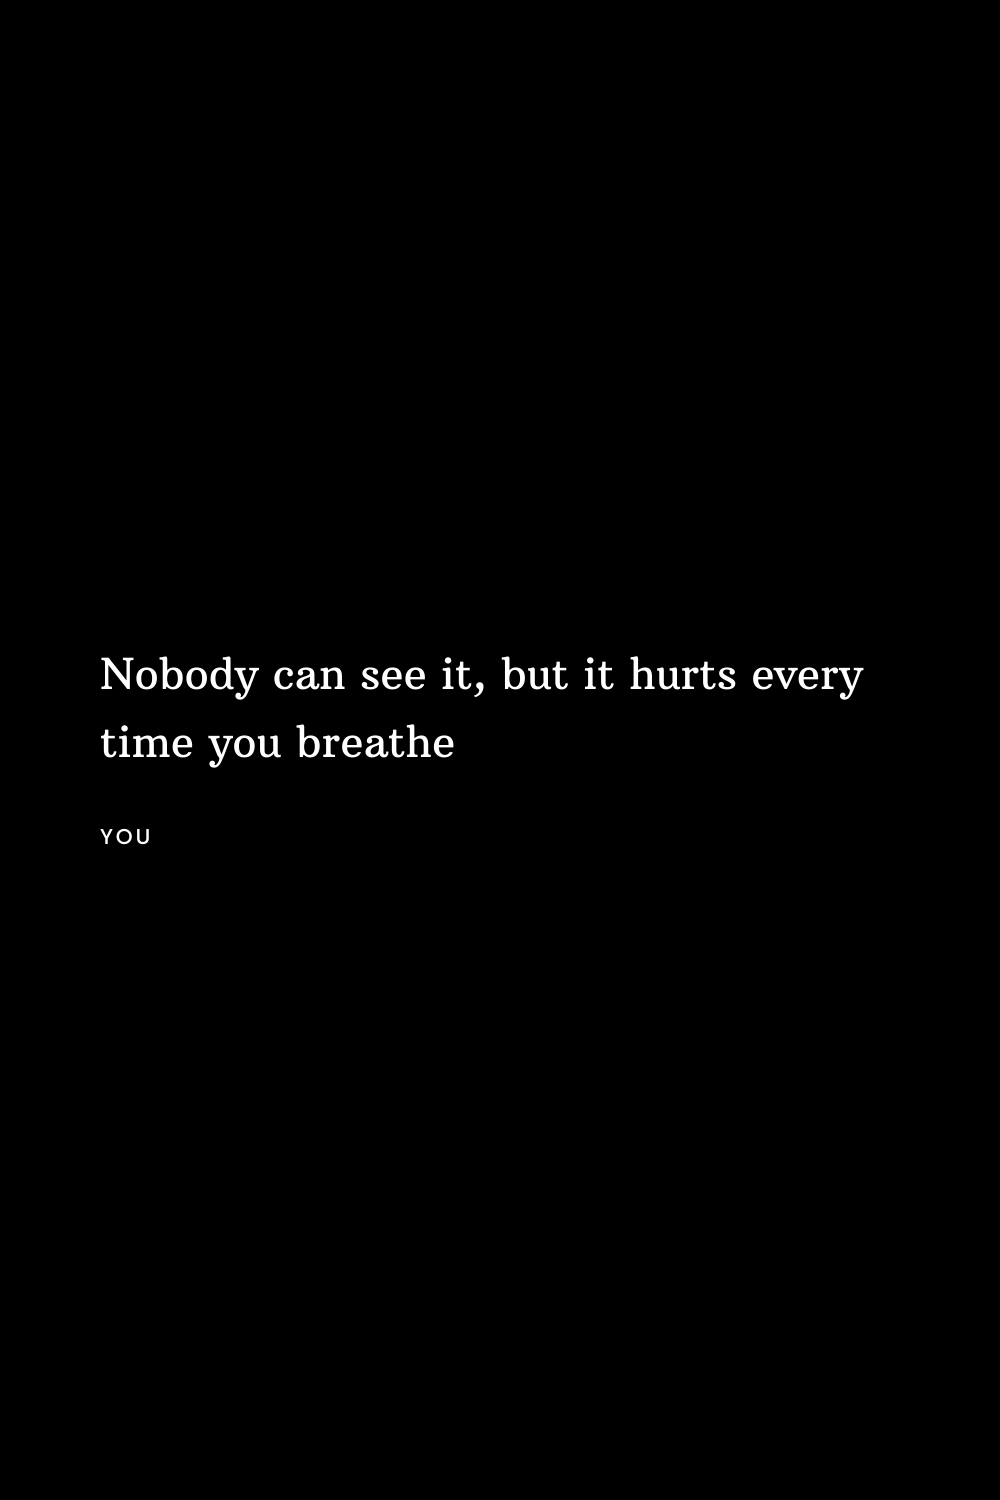 Nobody can see it, but it hurts every time you breathe.